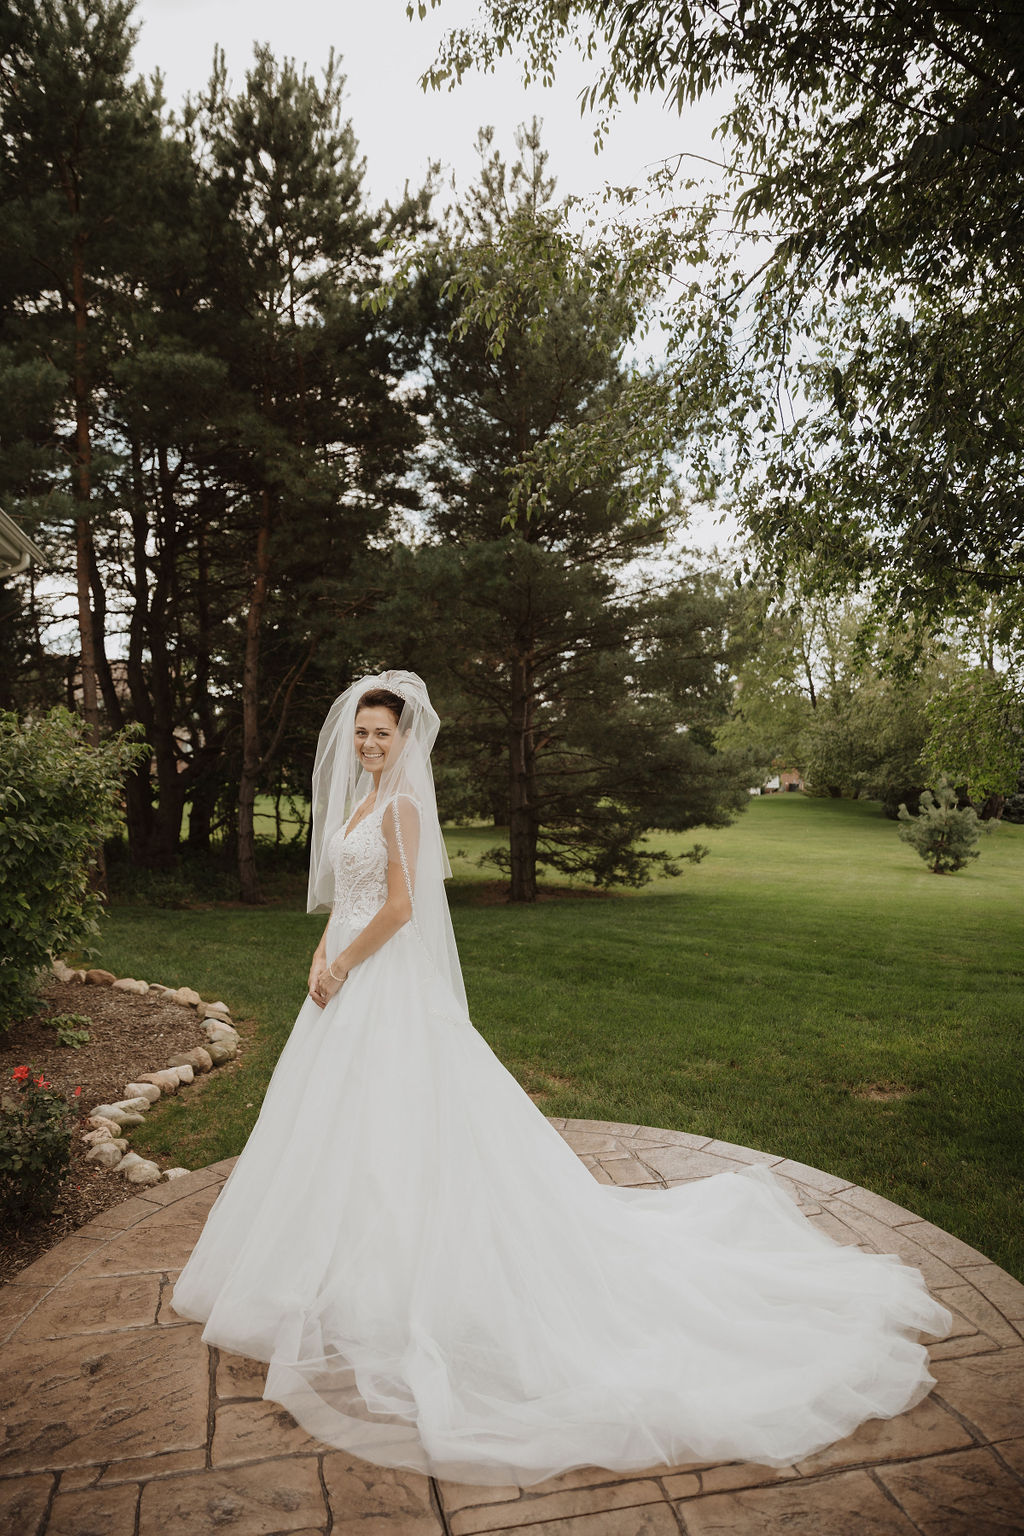 Bride Wearing Veil and Modern Princess Wedding Dress Called Taylor Lynette by Maggie Sottero